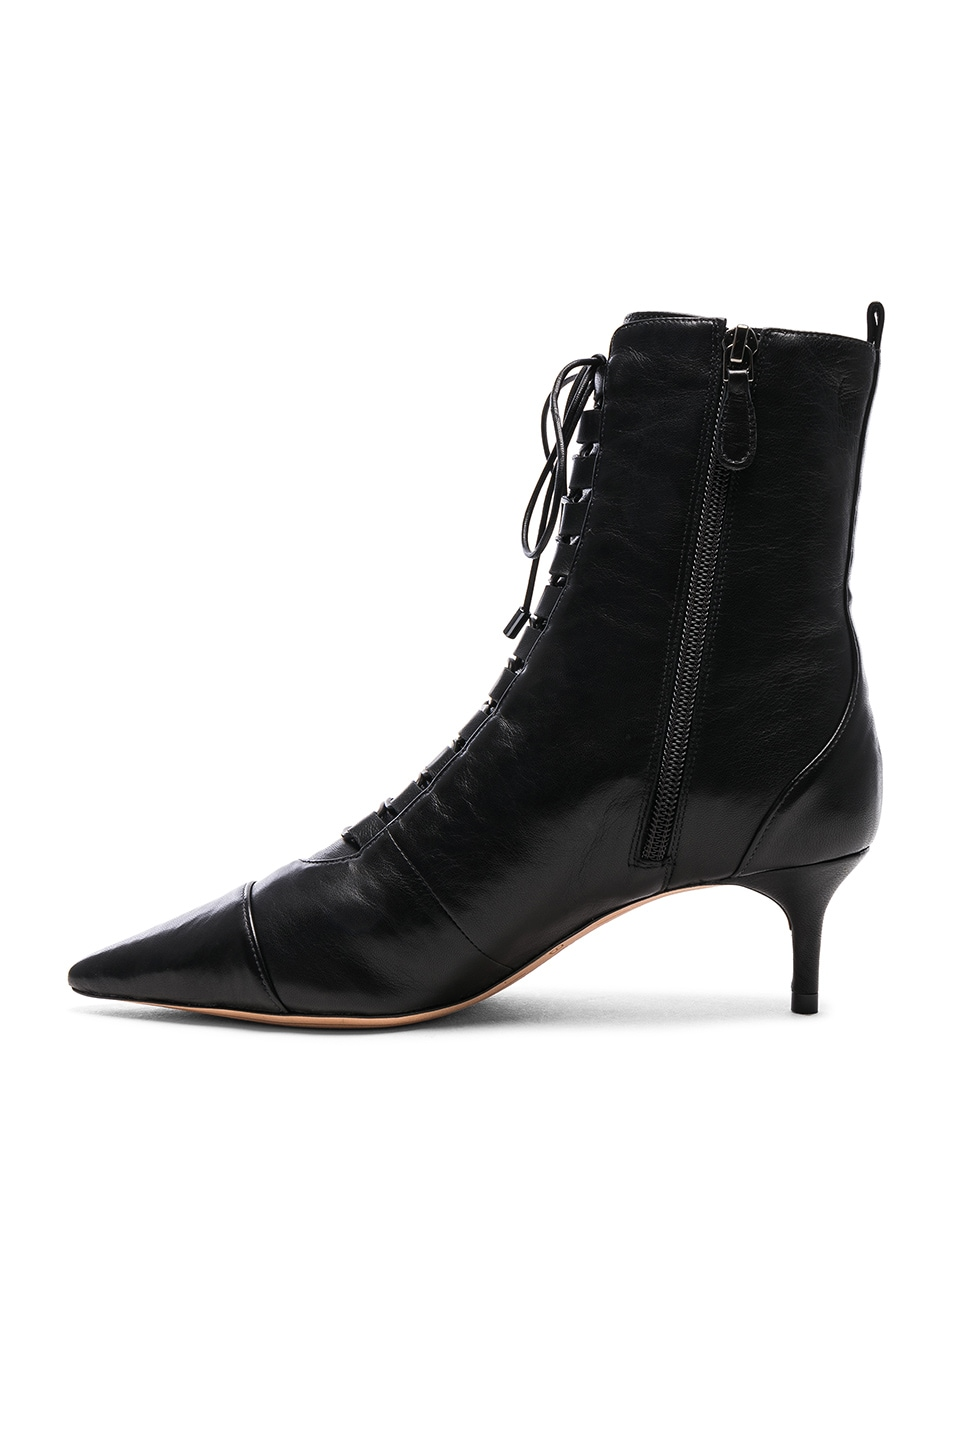 Image 5 of Alexandre Birman Leather Millen Lace Up Ankle Boots in Black